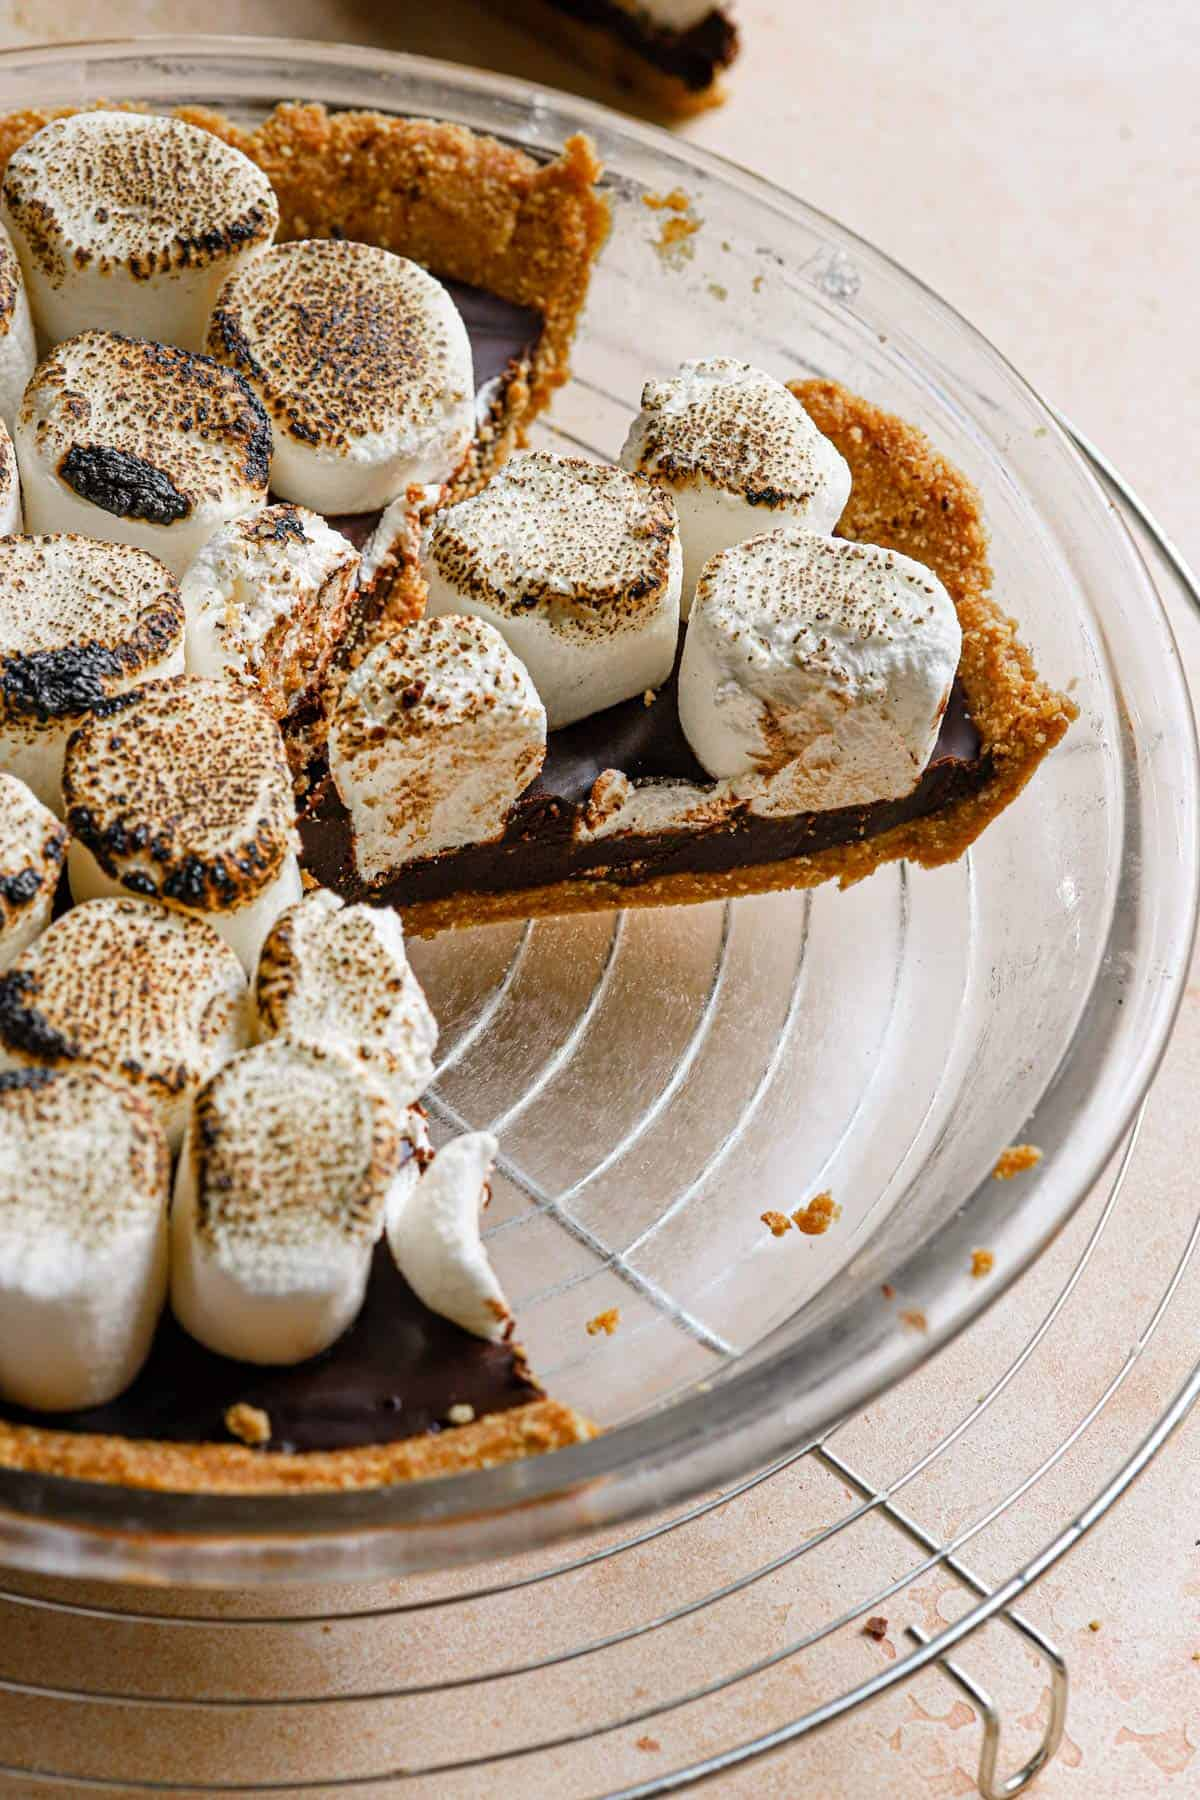 A glass pie plate with a s'mores pie slice from the side to show the layers of the pie.